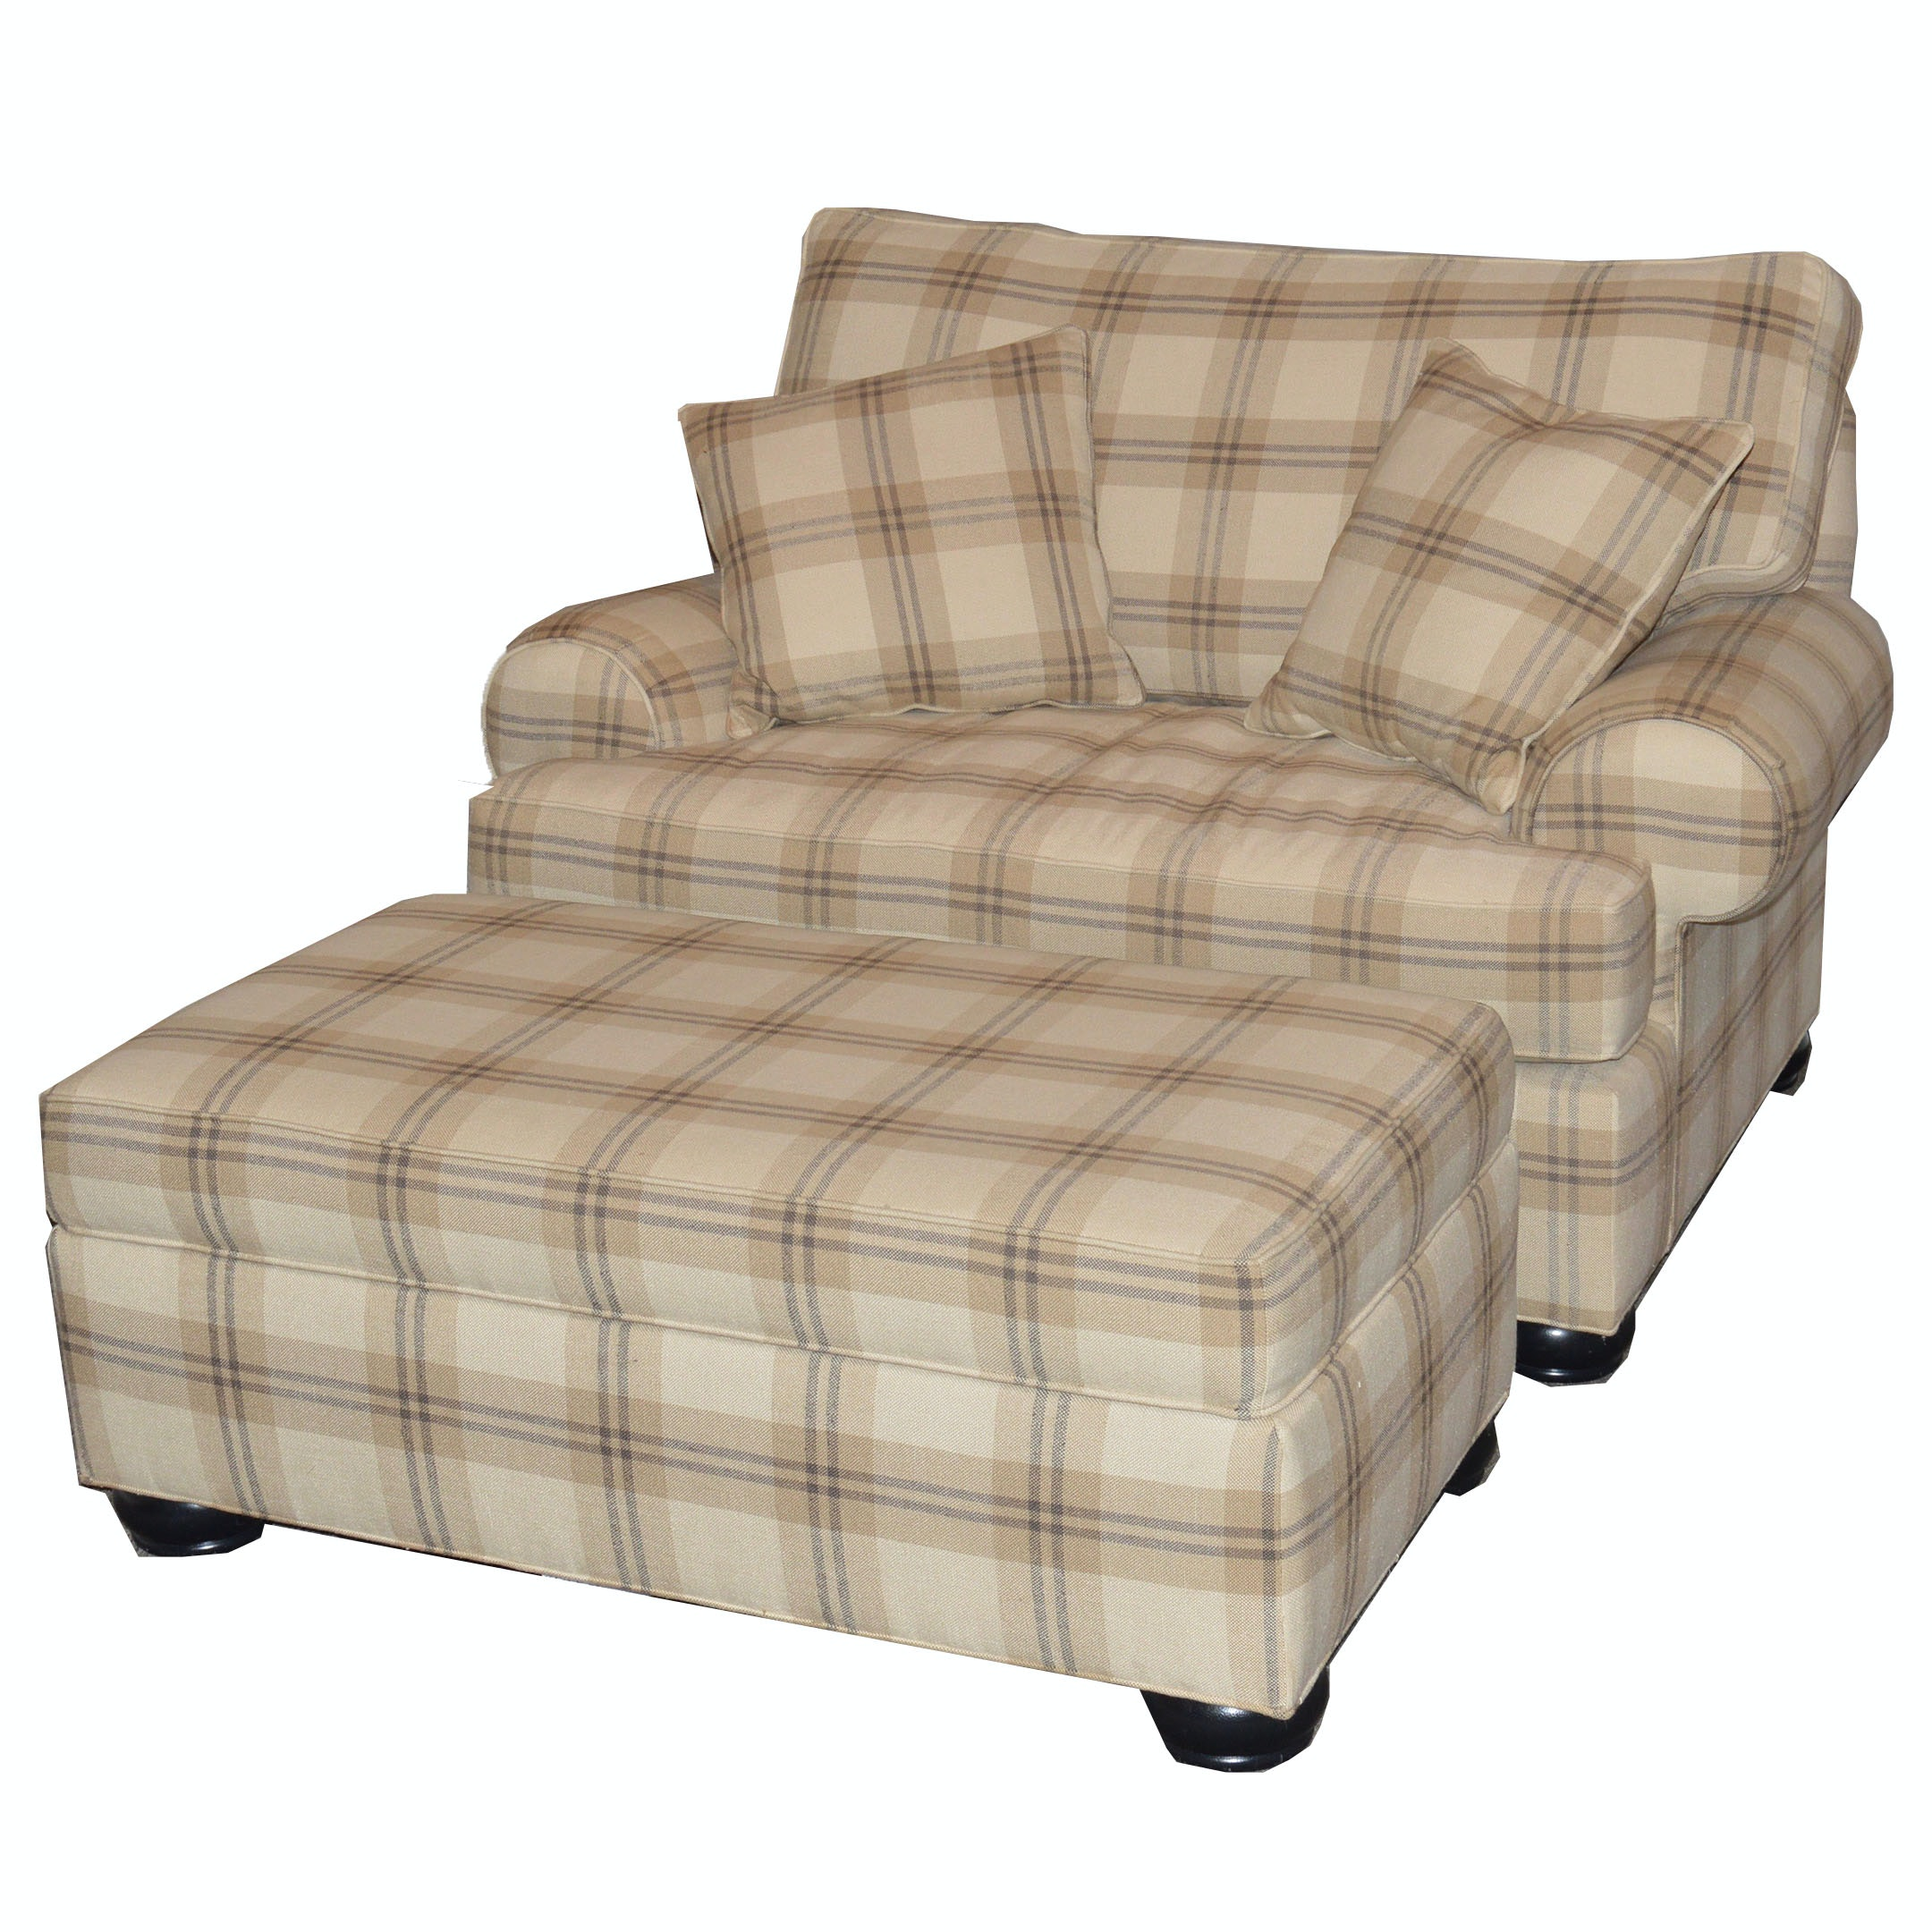 Oversize Plaid Chair And Ottoman By Ethan Allen ...